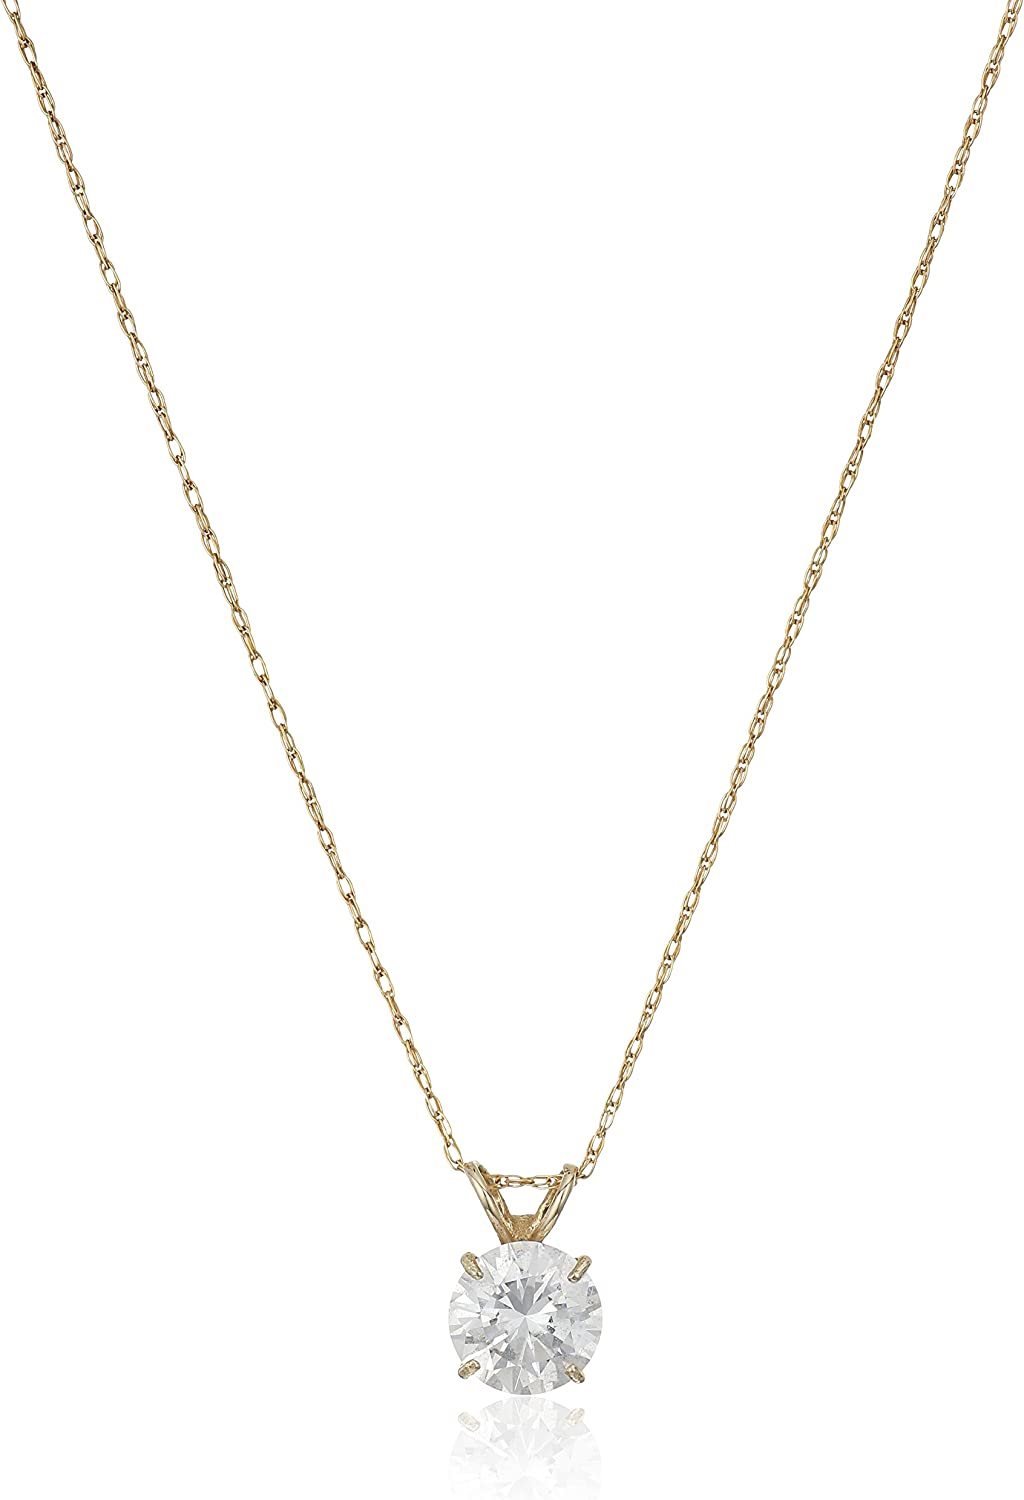 "Jewelili 10kt Gold 6.5mm Swarovski Zirconia Solitaire Pendant Necklace, 18"" Rope Chain"